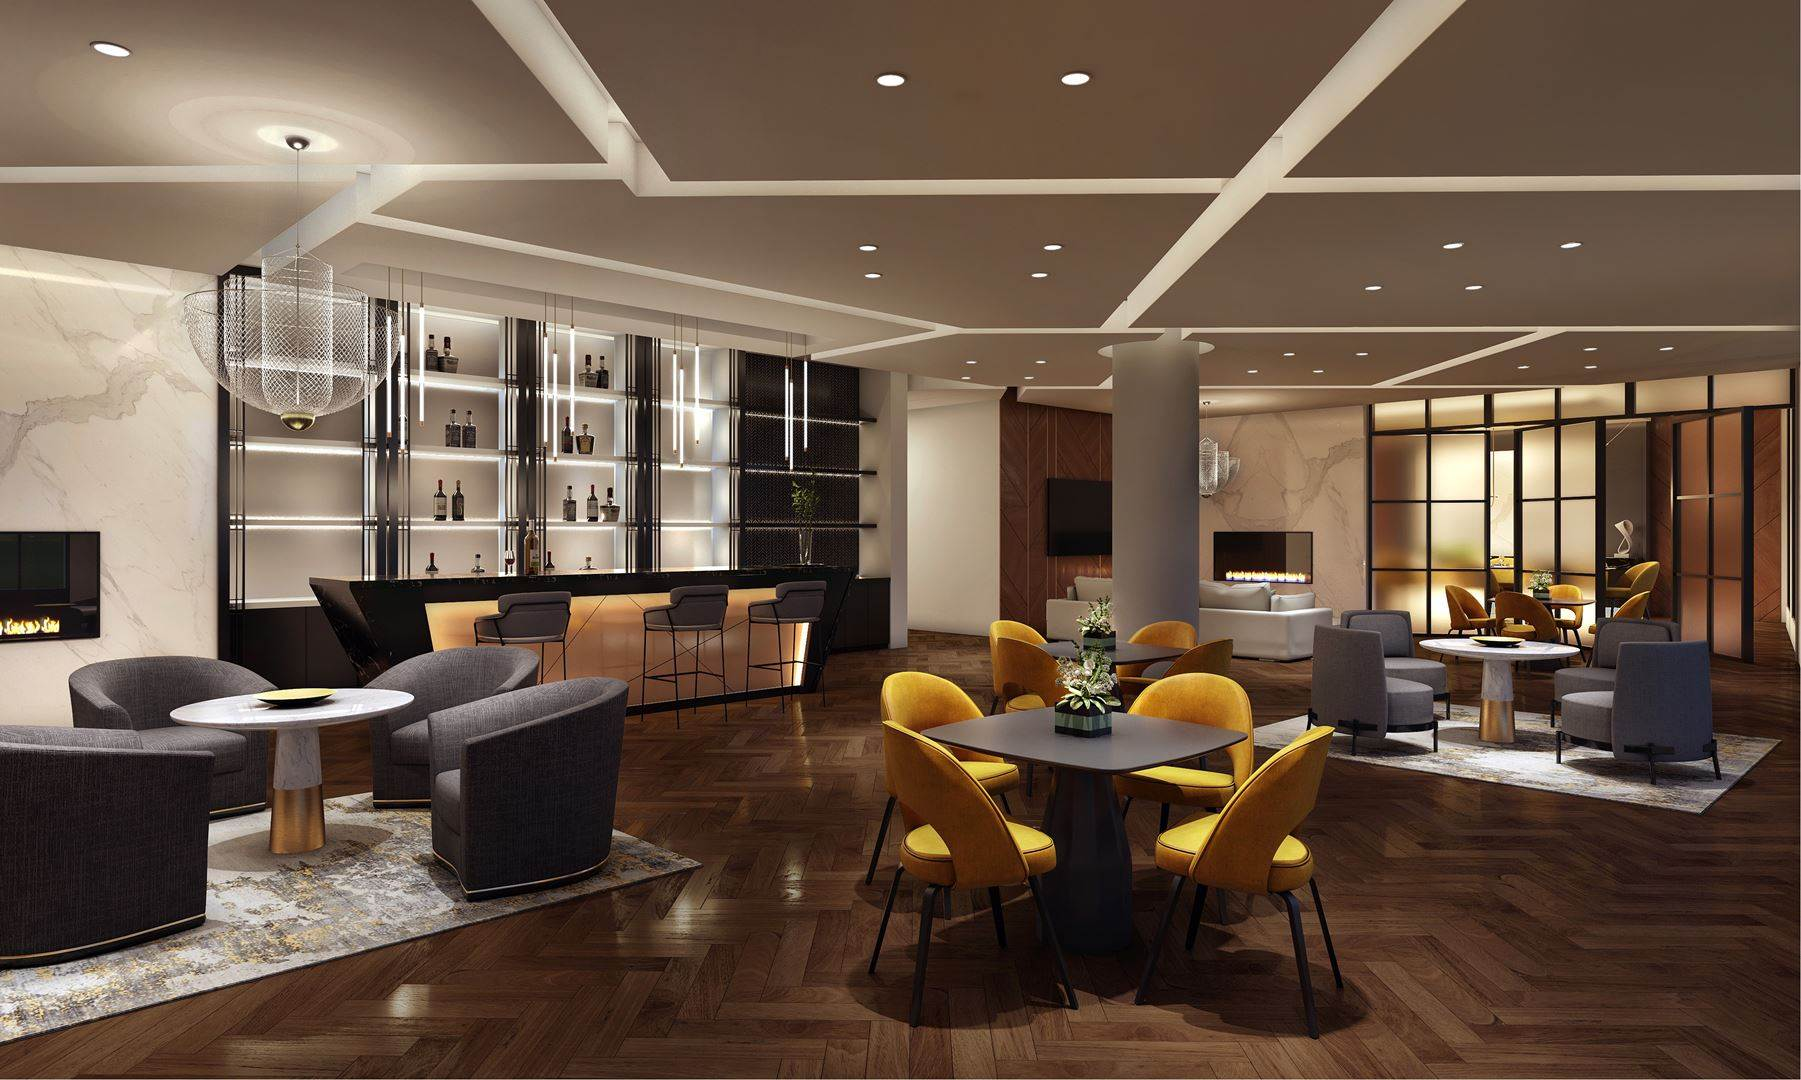 2020_10_26_09_30_35_thebutlercondominiums_fernbrookhomes_rendering_lounge